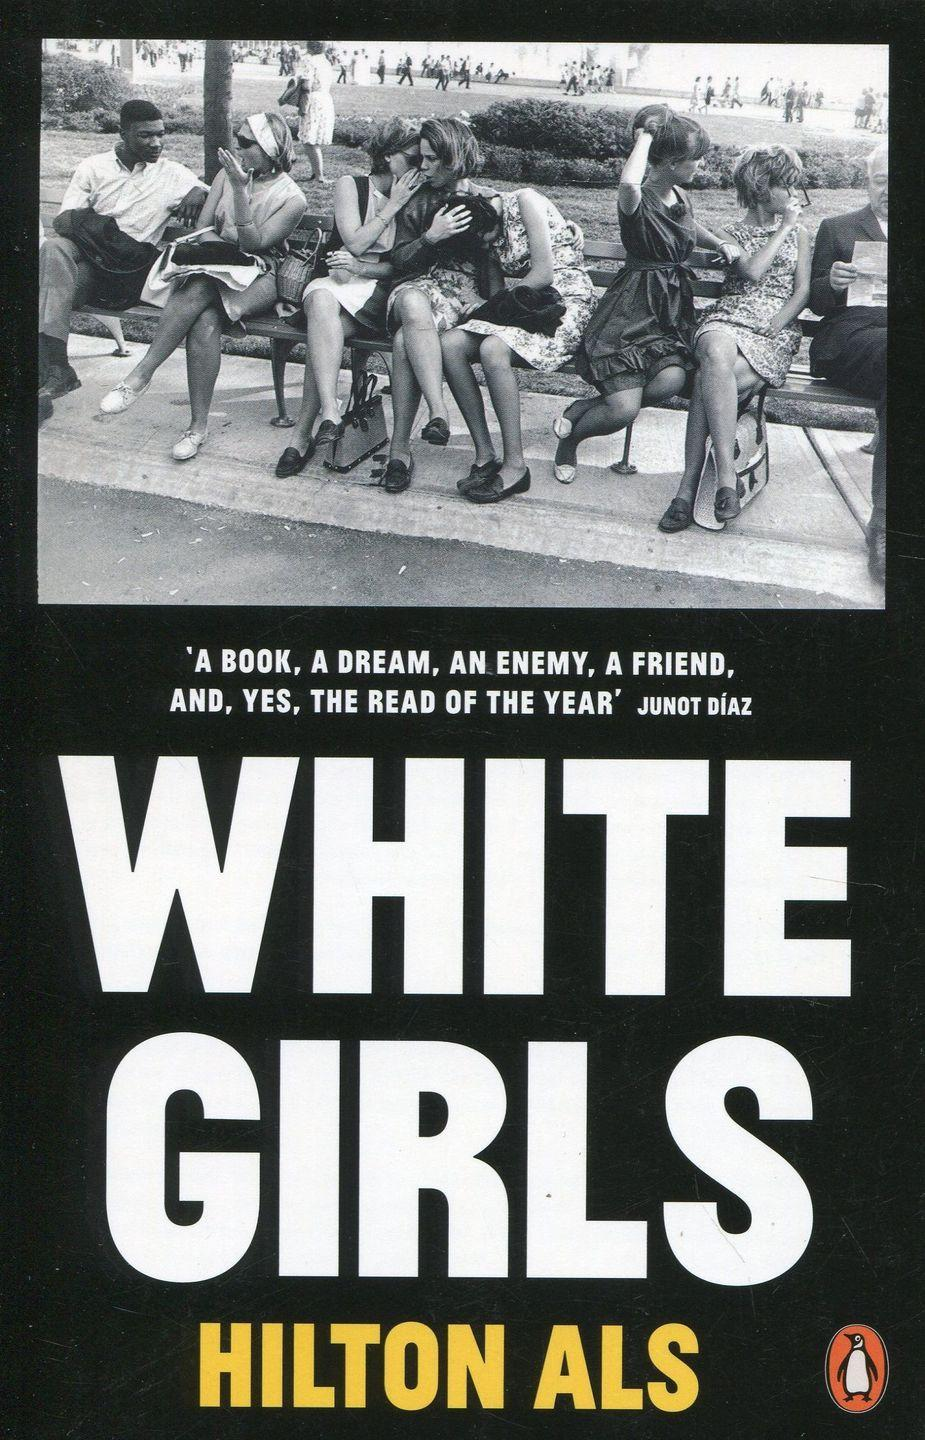 "<p>One of the most highly acclaimed essay collections in years, White Girls is a complex portrait of 'white girls' which includes figures such as Truman Capote and Louise Brooks, Malcolm X and Flannery O'Connor.<br></p><p><a class=""link rapid-noclick-resp"" href=""https://www.amazon.co.uk/White-Girls-Hilton-Als/dp/0141987294/ref=sr_1_1?crid=13TJSSYZV8A7Z&dchild=1&keywords=white+girls+hilton+als&qid=1586949589&sprefix=white+girls+hilton%2Caps%2C199&sr=8-1&tag=hearstuk-yahoo-21&ascsubtag=%5Bartid%7C1921.g.32141605%5Bsrc%7Cyahoo-uk"" rel=""nofollow noopener"" target=""_blank"" data-ylk=""slk:SHOP NOW"">SHOP NOW</a></p>"